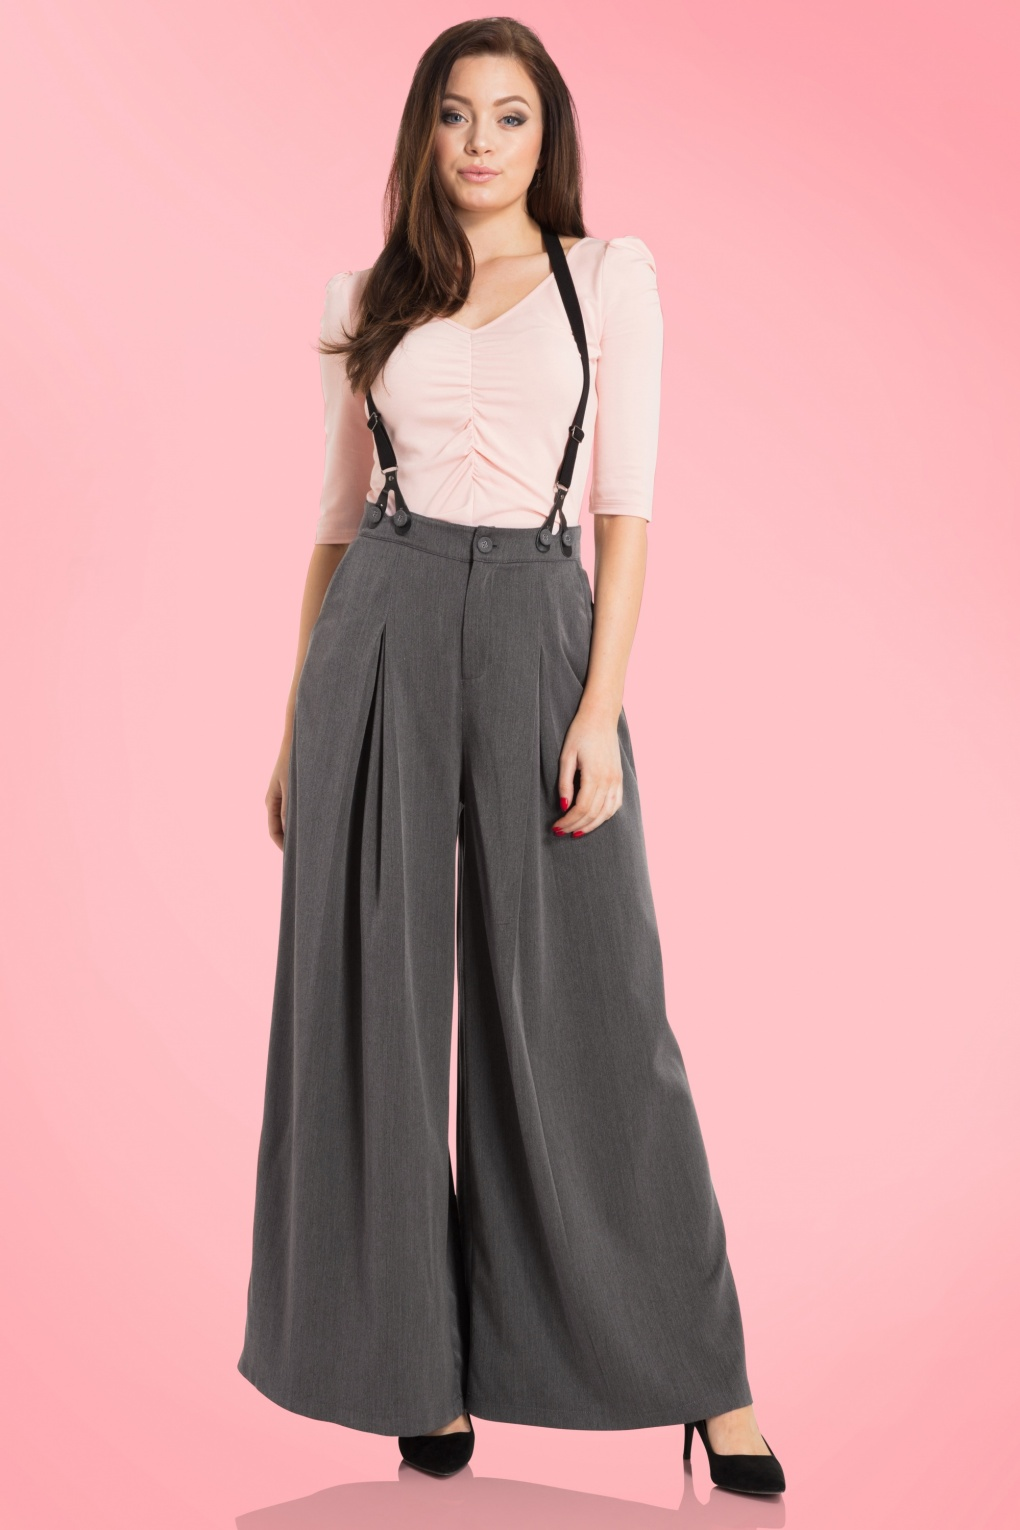 Vintage High Waisted Trousers, Sailor Pants, Jeans 40s Khloe Trousers in Grey £40.09 AT vintagedancer.com